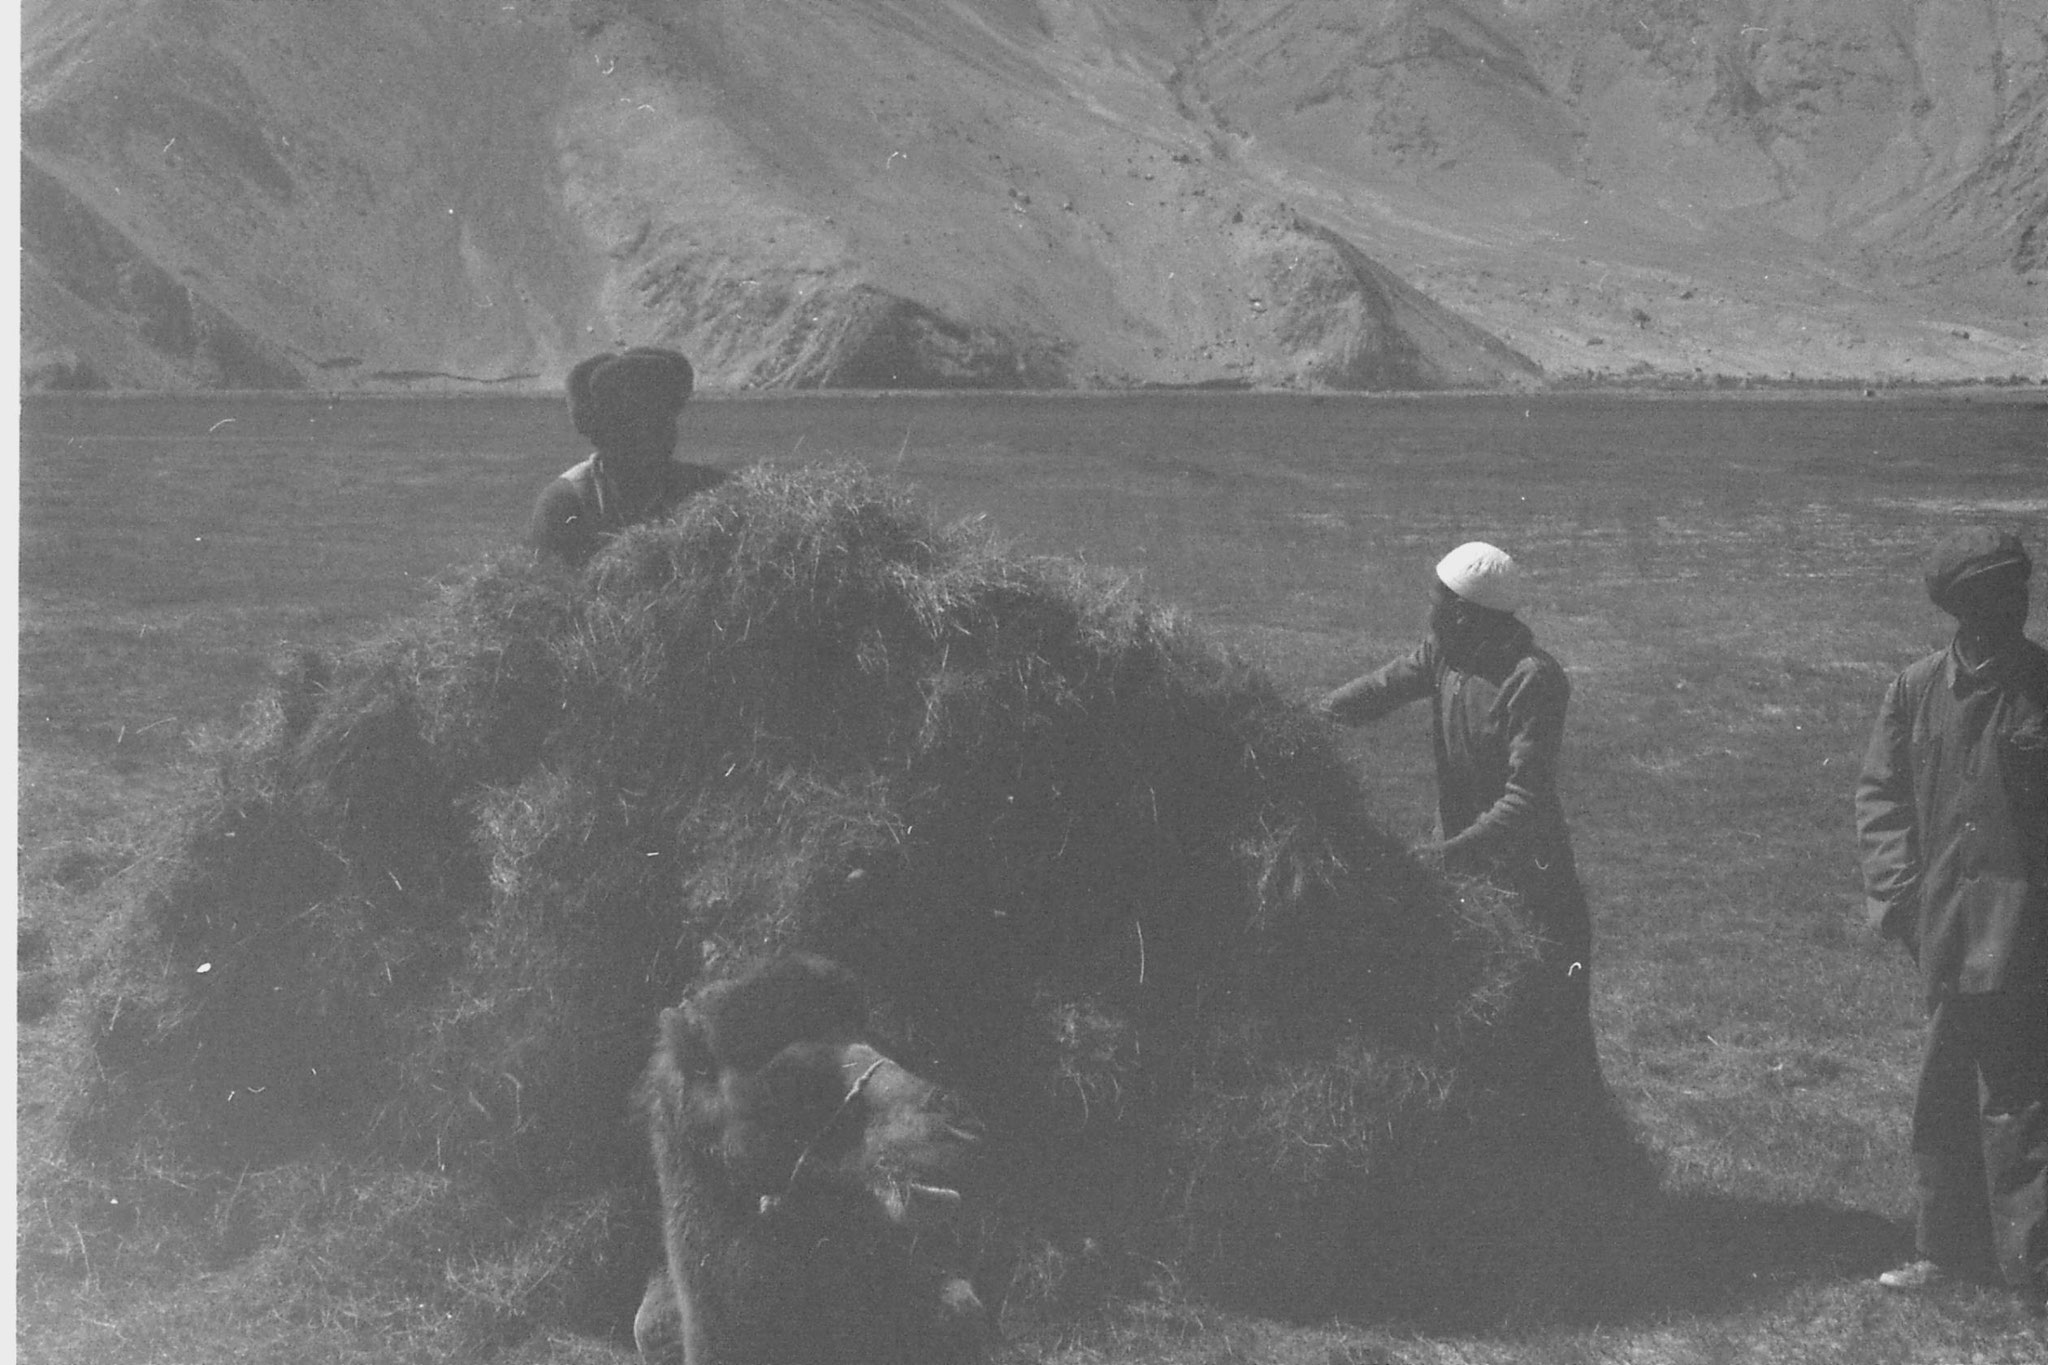 10/9/1989: 10: Lake Karakul